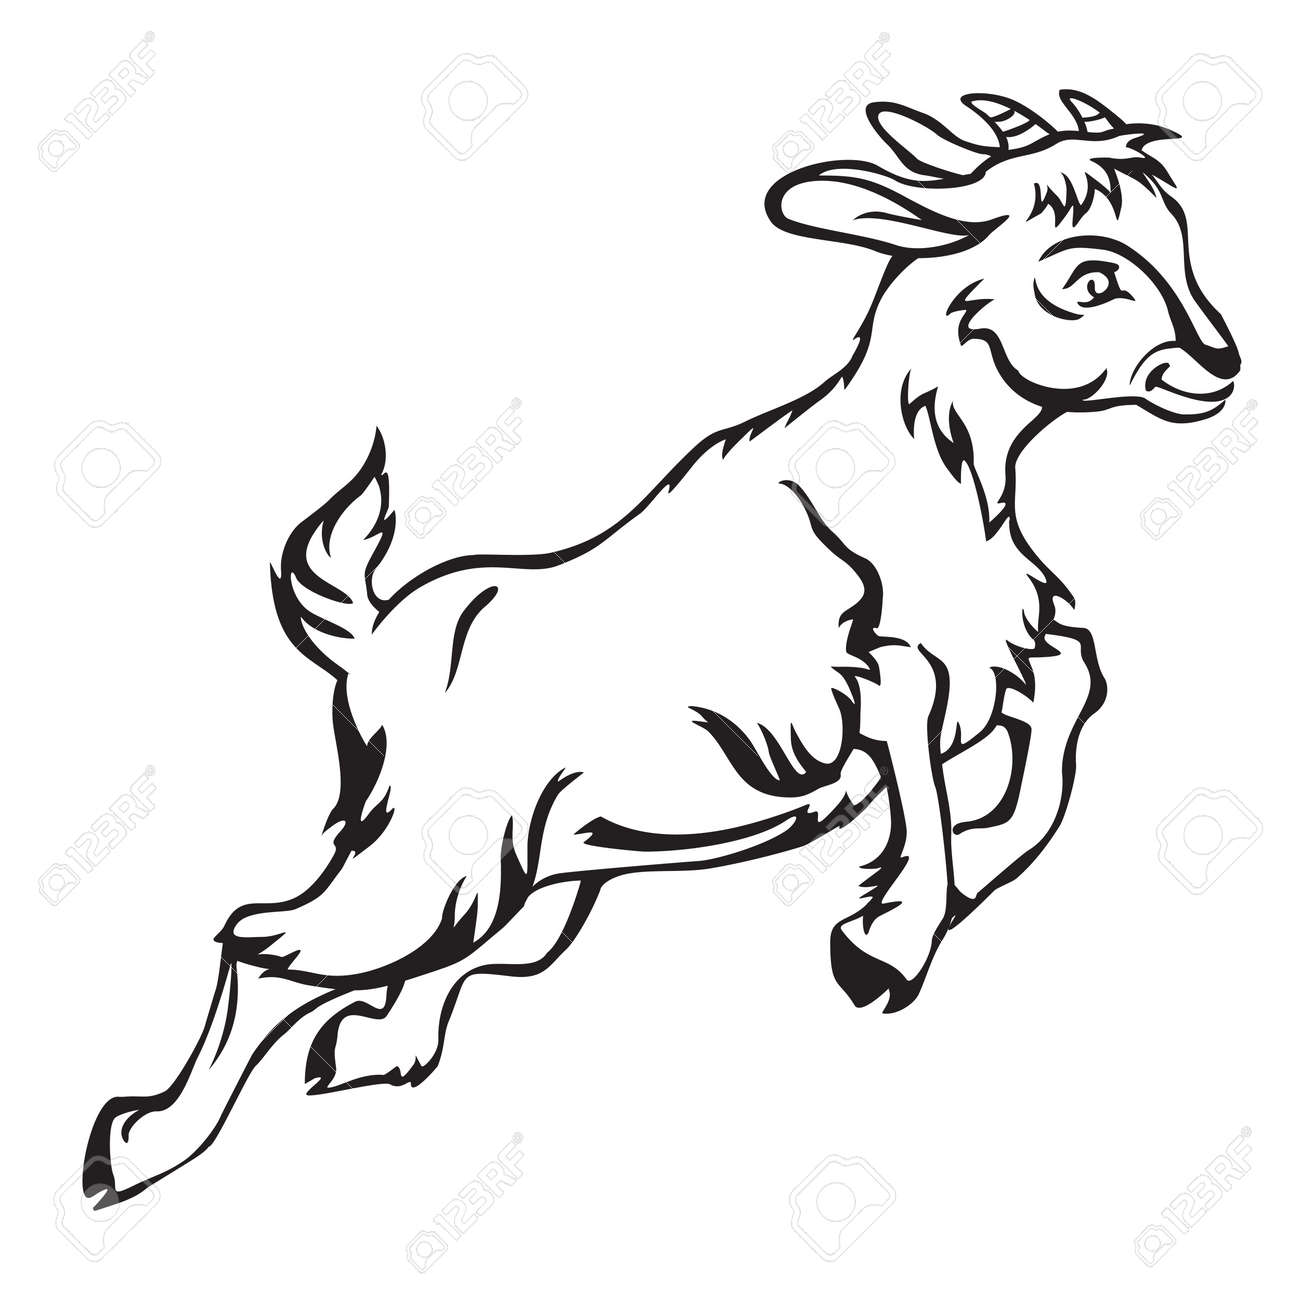 goat kid clipart black and white all about clipart Metal Goat decorative jumping funny cartoon goat kid monochrome vector